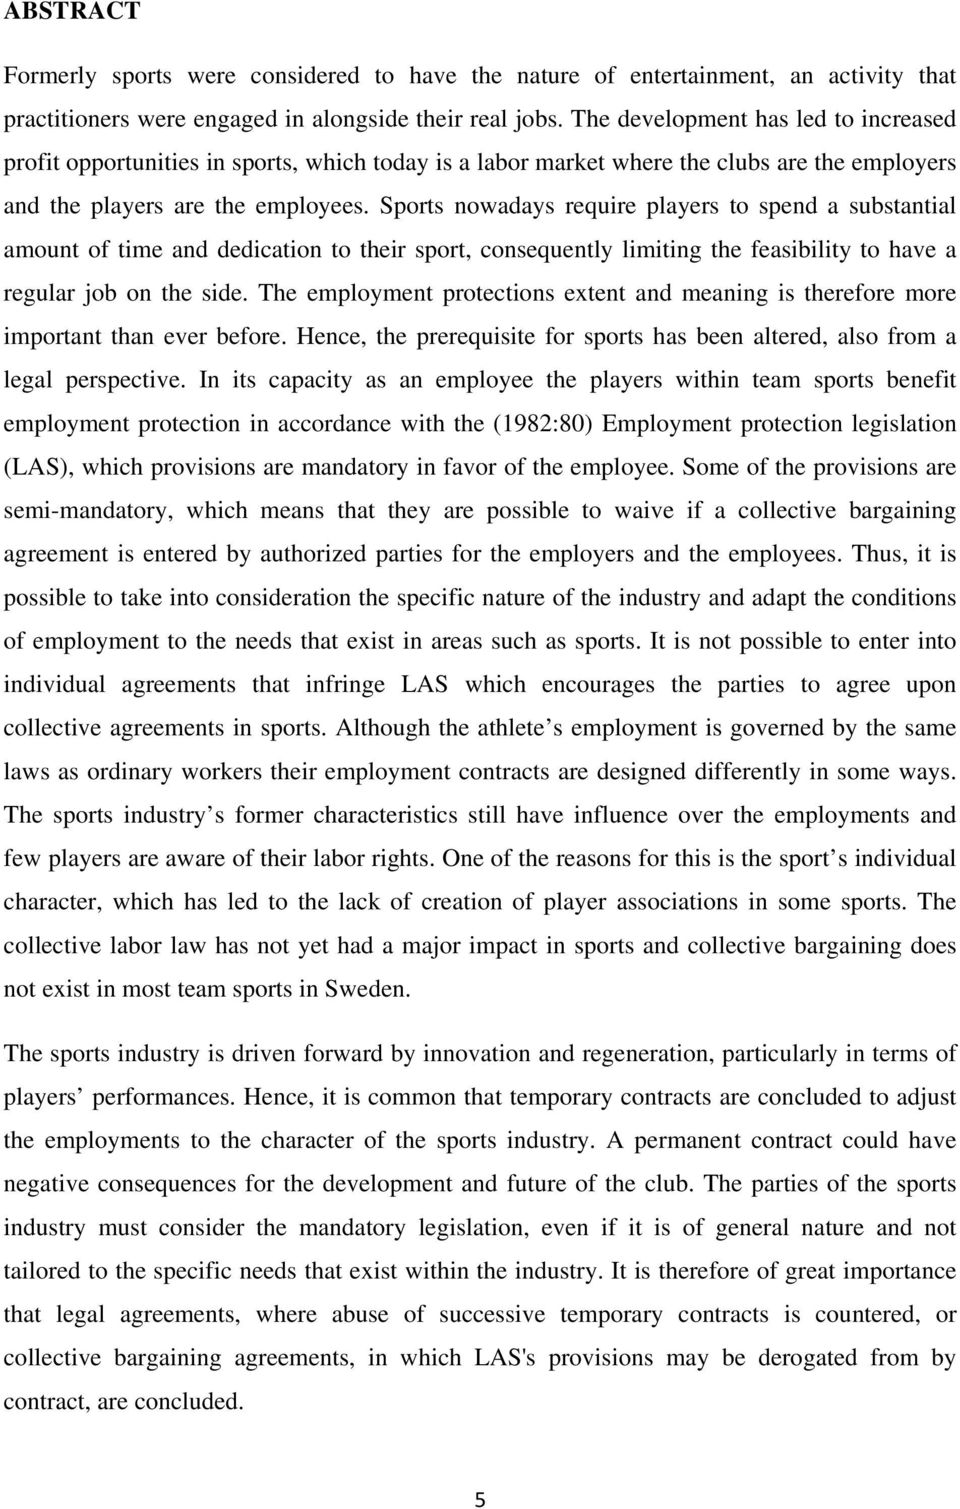 Sports nowadays require players to spend a substantial amount of time and dedication to their sport, consequently limiting the feasibility to have a regular job on the side.